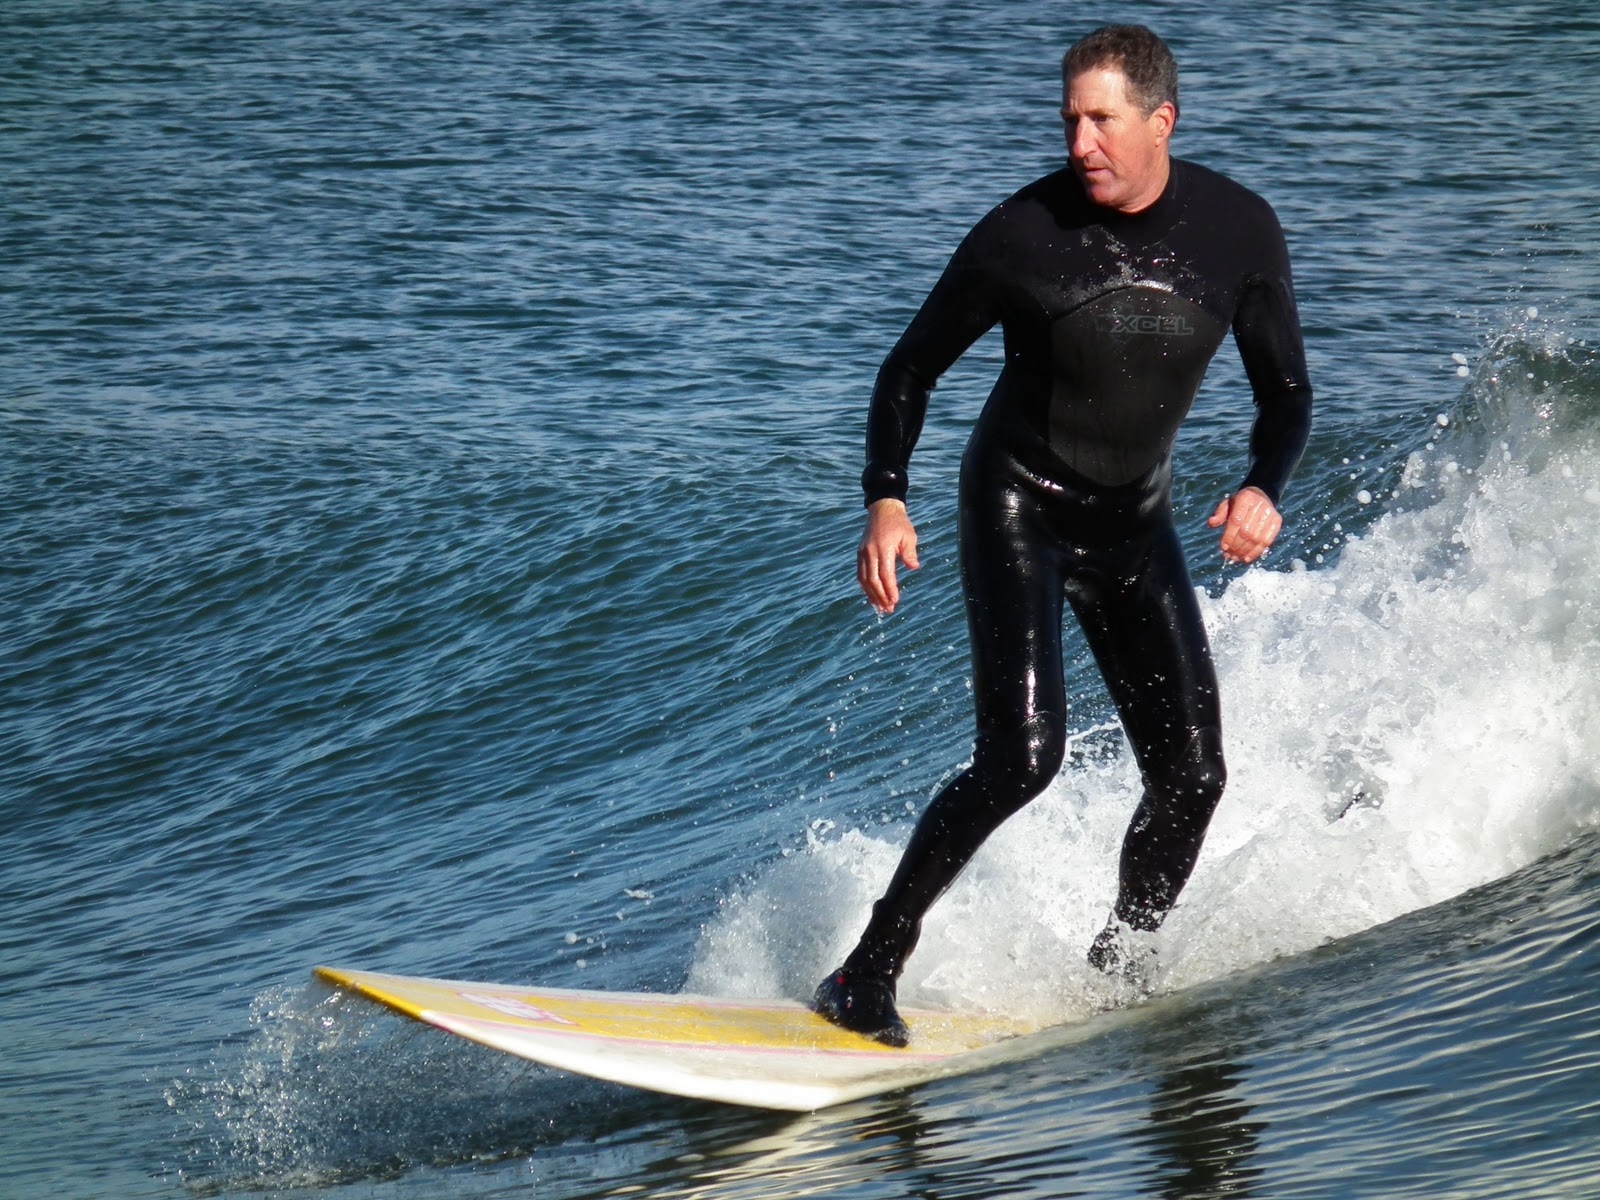 Outdoors nm surf fishing in california eases winter blues for Surf fishing northern california